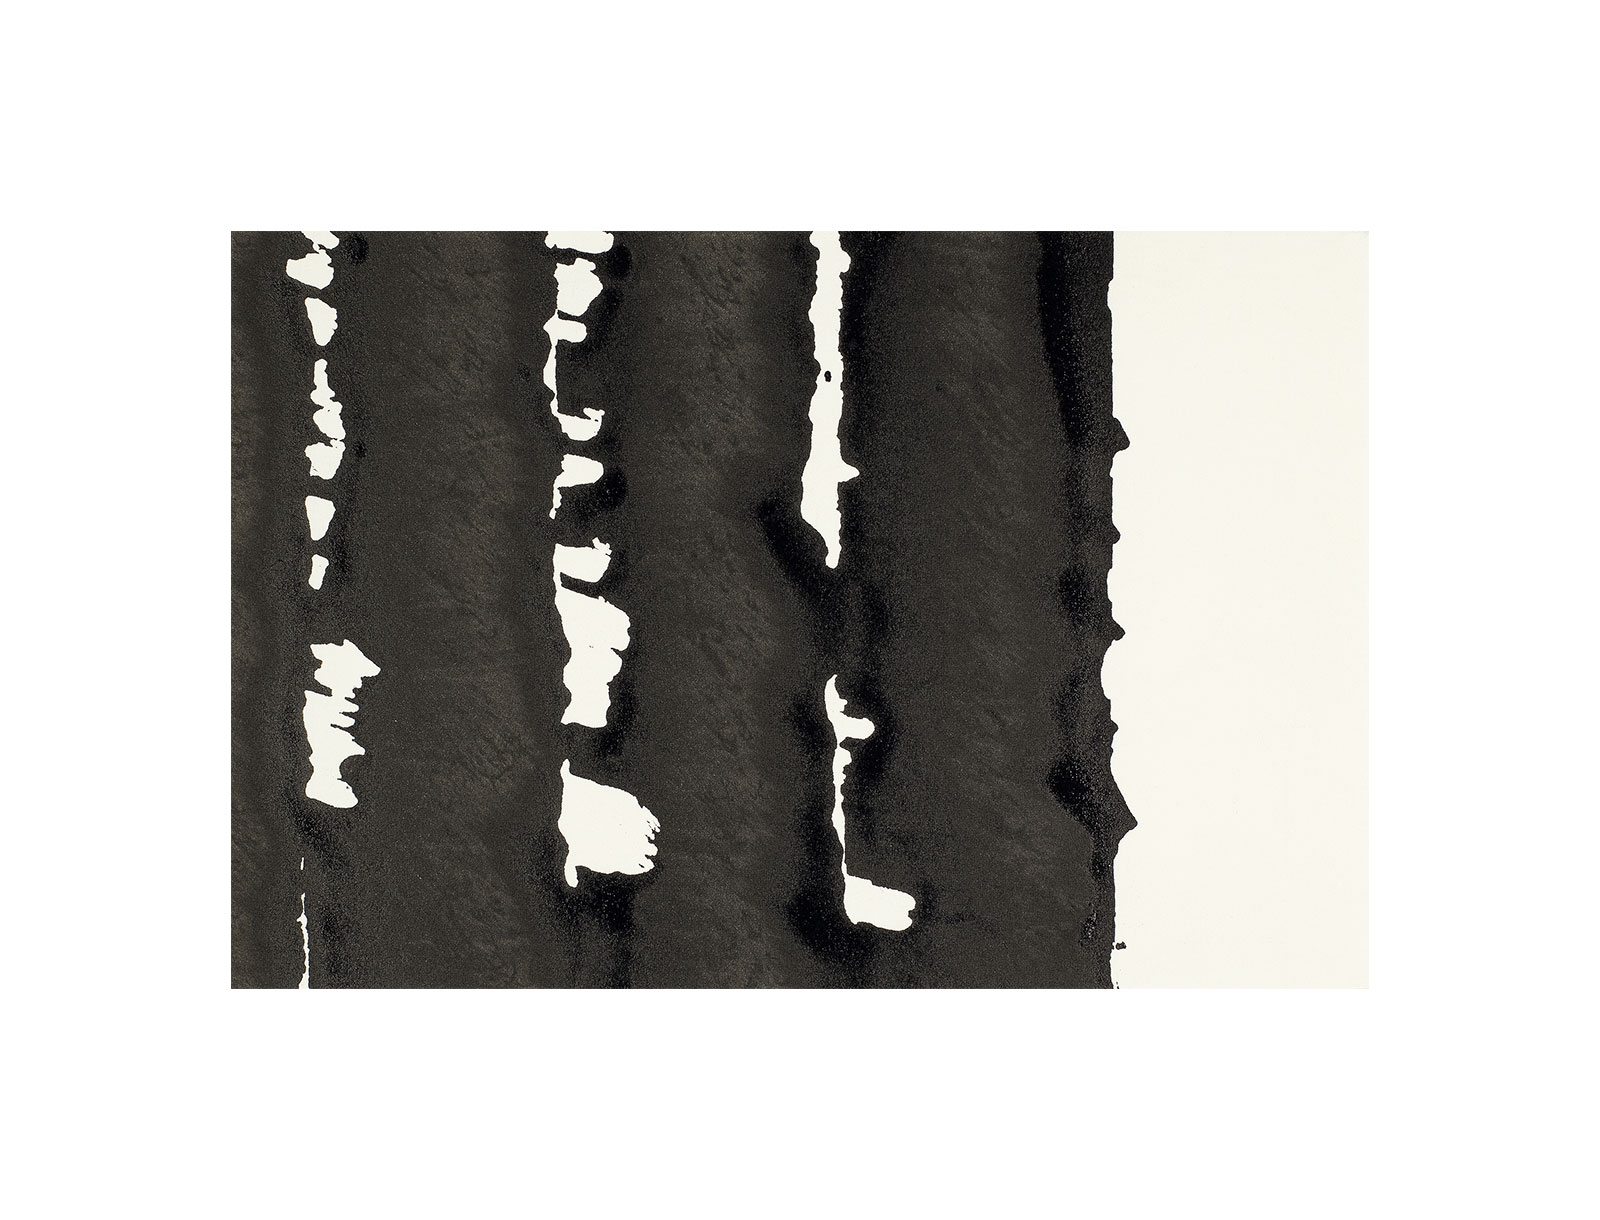 Ink 6.3, indian ink on paper, black and white artwork, jf escande, contemporary art